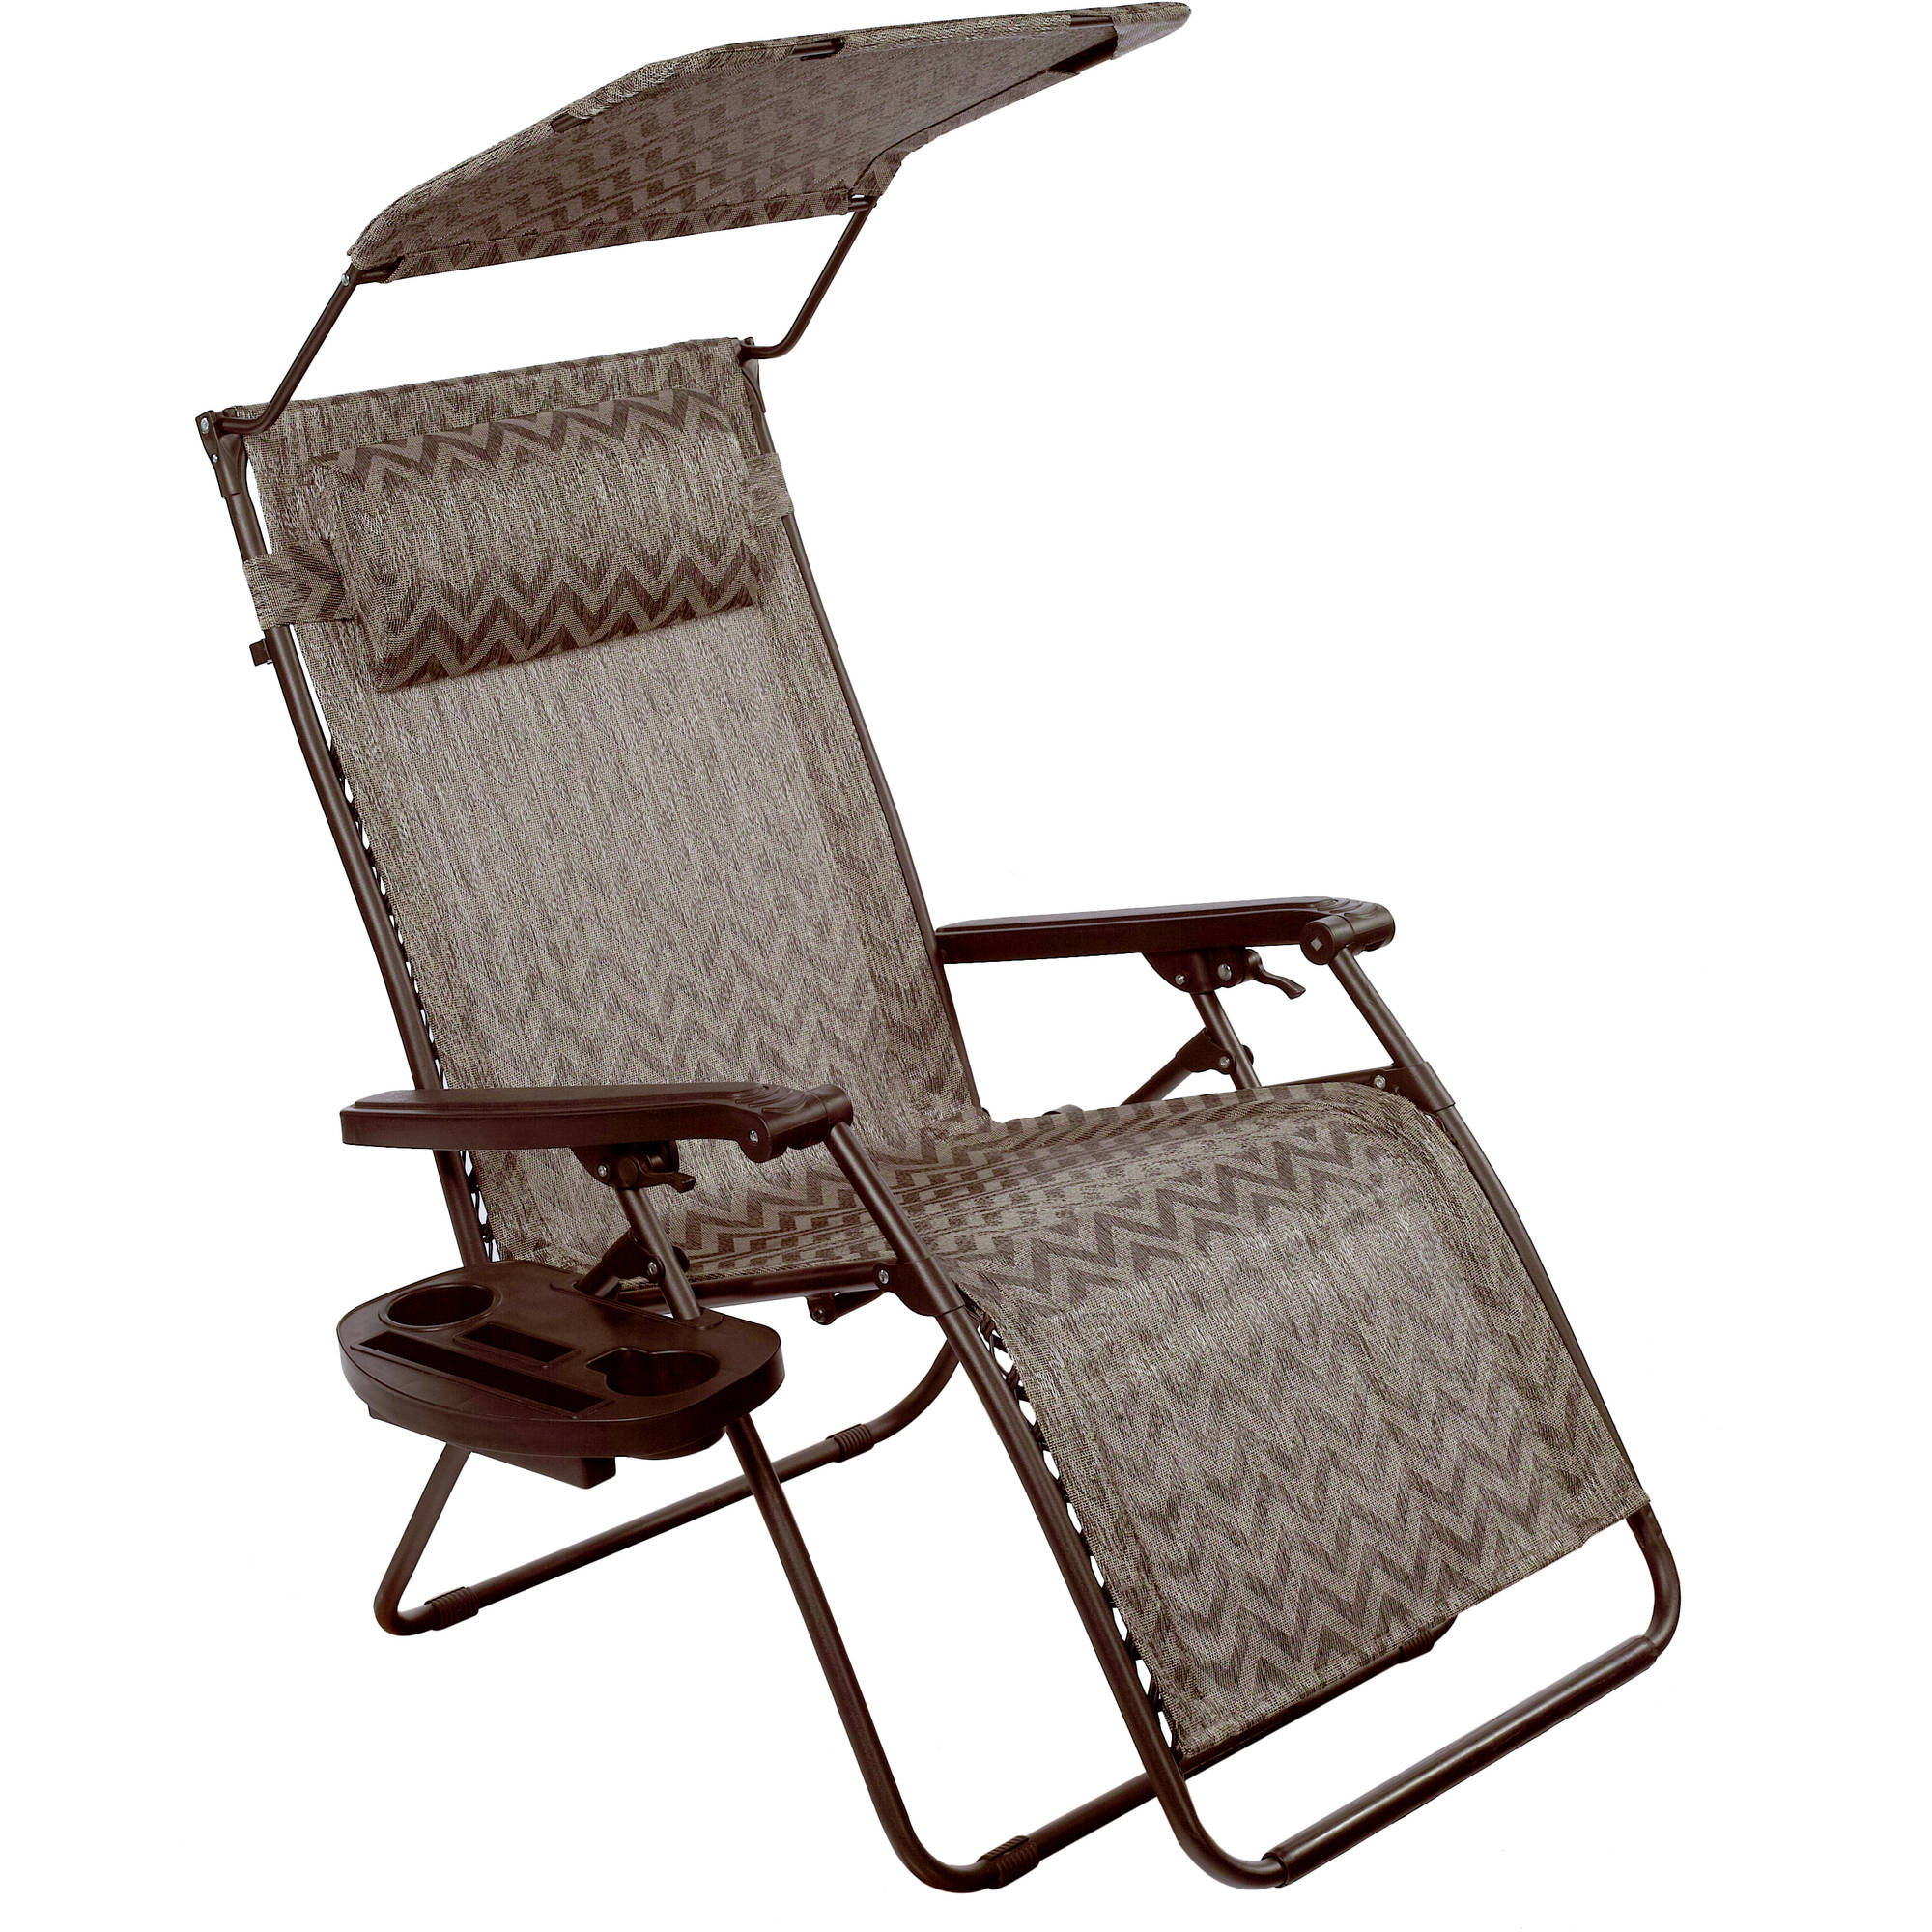 bliss hammocks deluxe xl gravity free recliner zero gravity lounge chair with sunshade canopy adjustable pillow and cup holder  utility tray folds easily     bliss hammocks deluxe xl gravity free recliner zero gravity lounge      rh   walmart